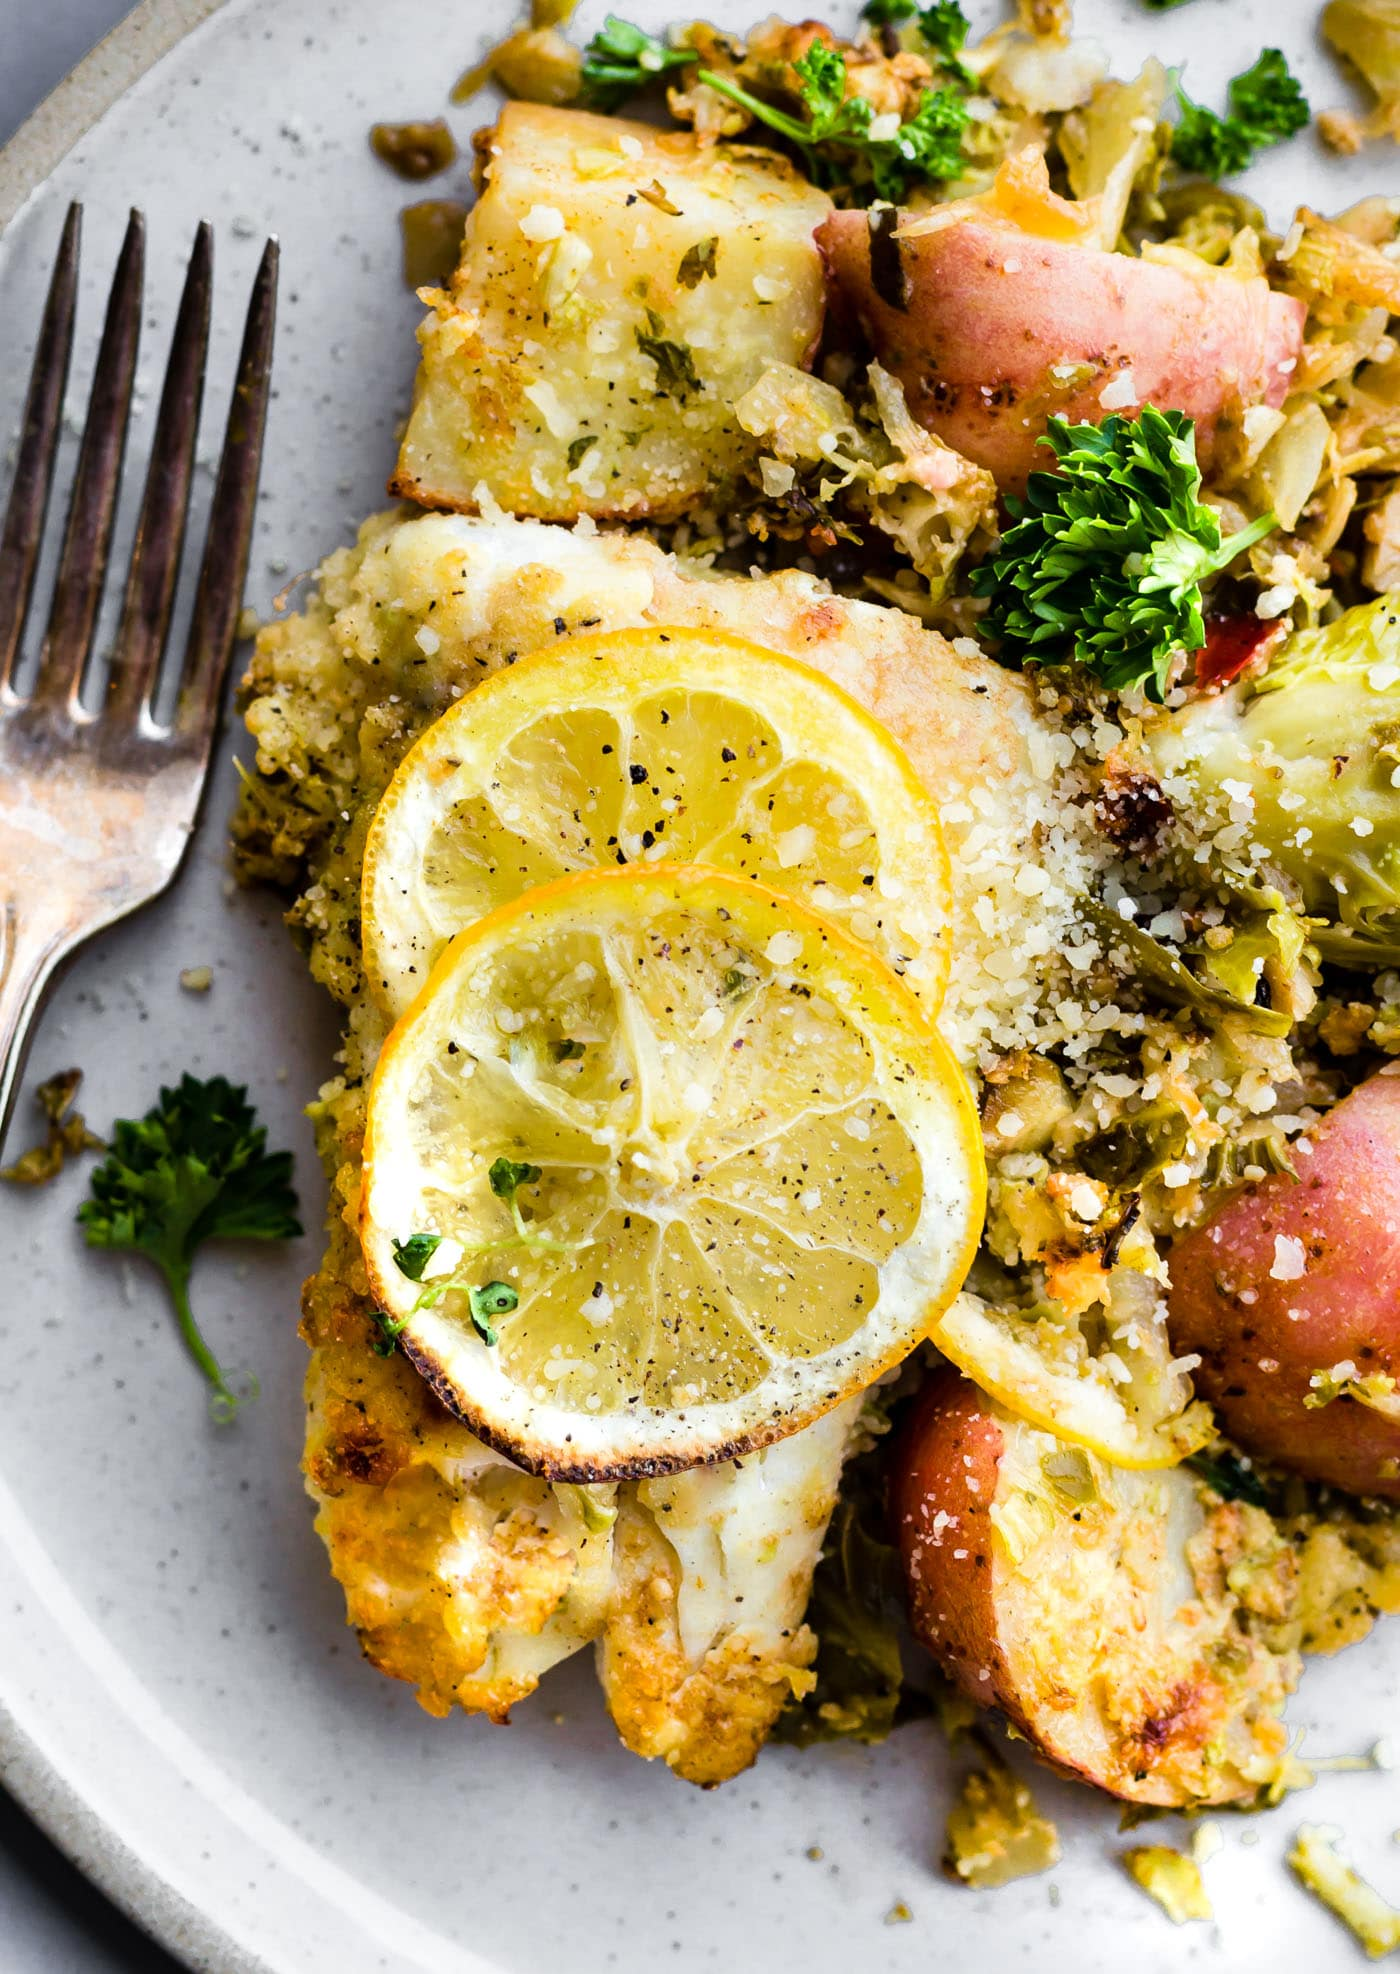 Honey Mustard Baked Fish And Vegetables One Pan Meal